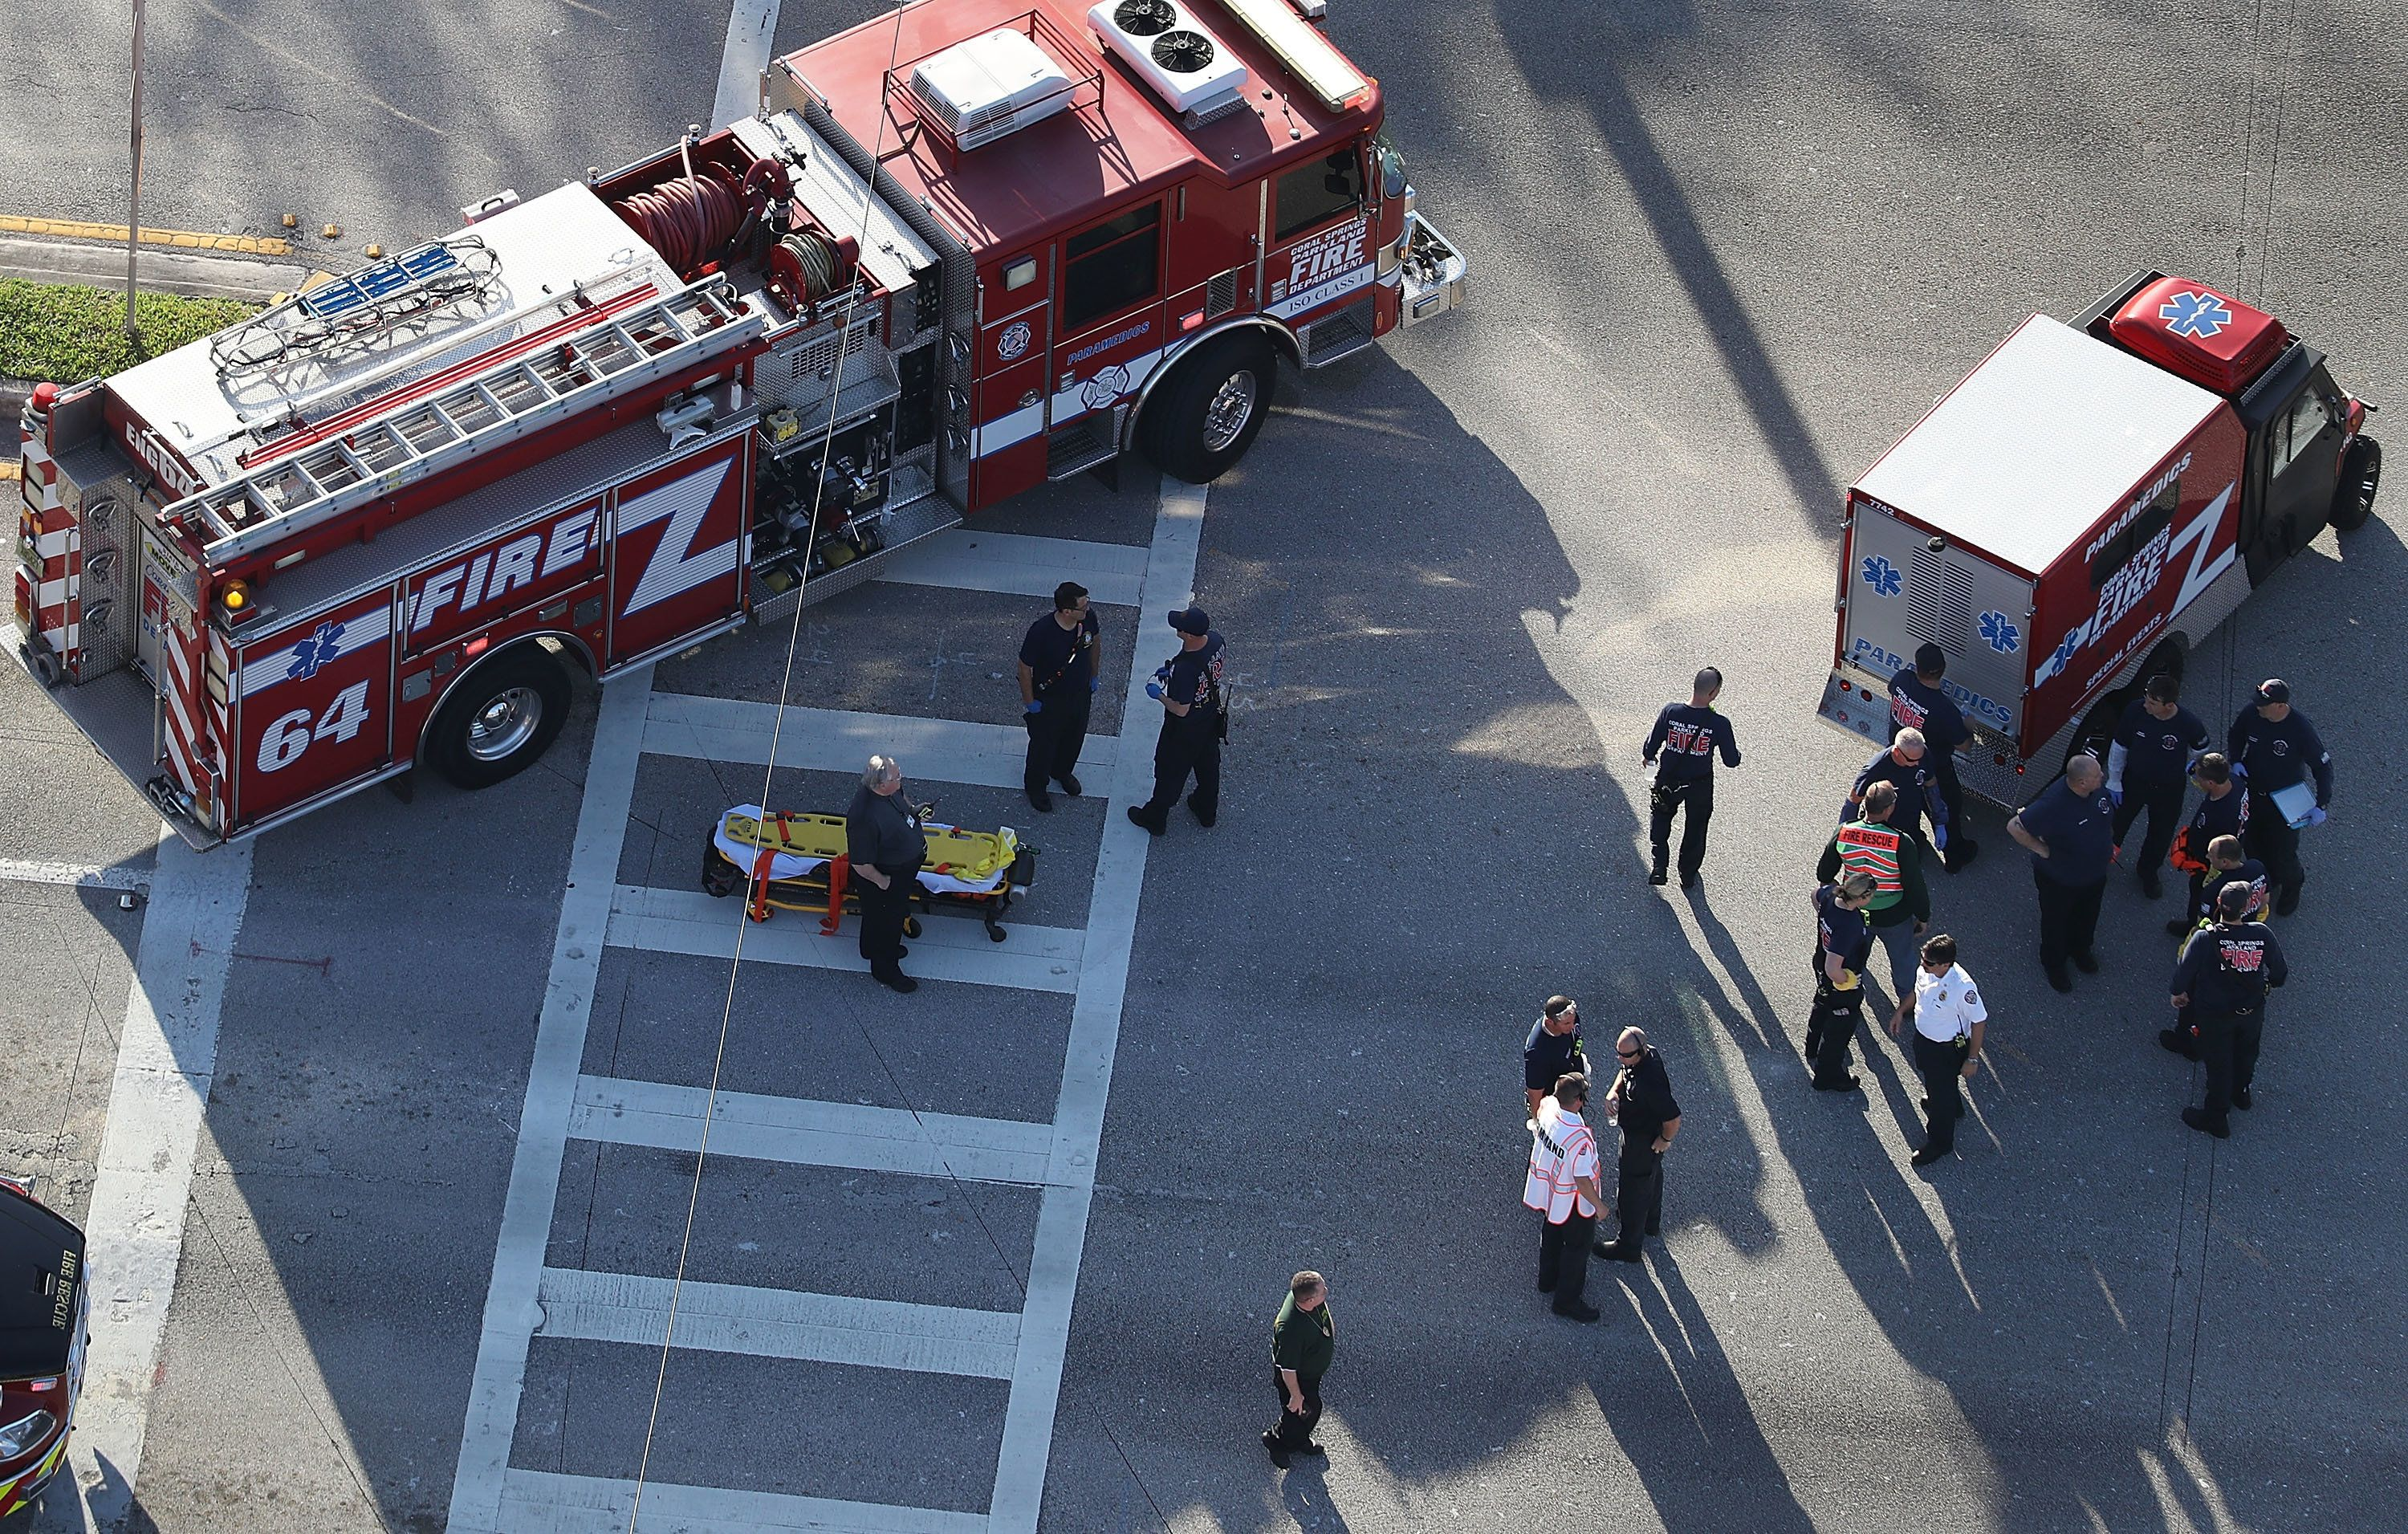 PARKLAND, FL - FEBRUARY 14:  Fire Rescue personnel work the scene at the Marjory Stoneman Douglas High School after a shooting at the school that reportedly killed and injured multiple people on February 14, 2018 in Parkland, Florida. Numerous law enforcement officials continue to investigate the scene.  (Photo by Joe Raedle/Getty Images)